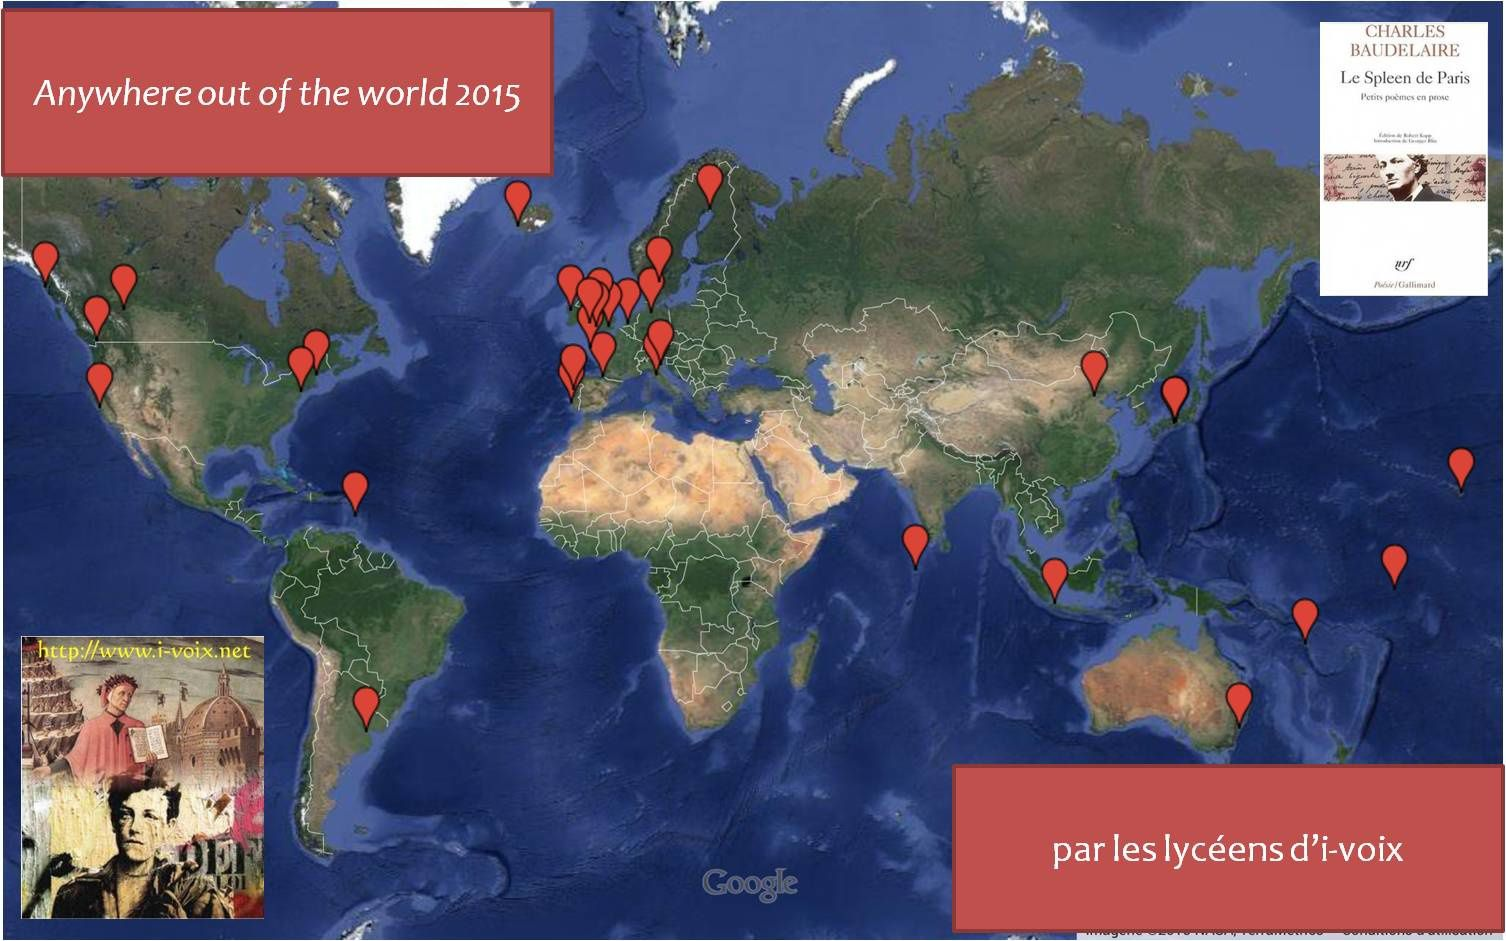 Anywhere out of the world 2015, par les lycéens d'i-voix